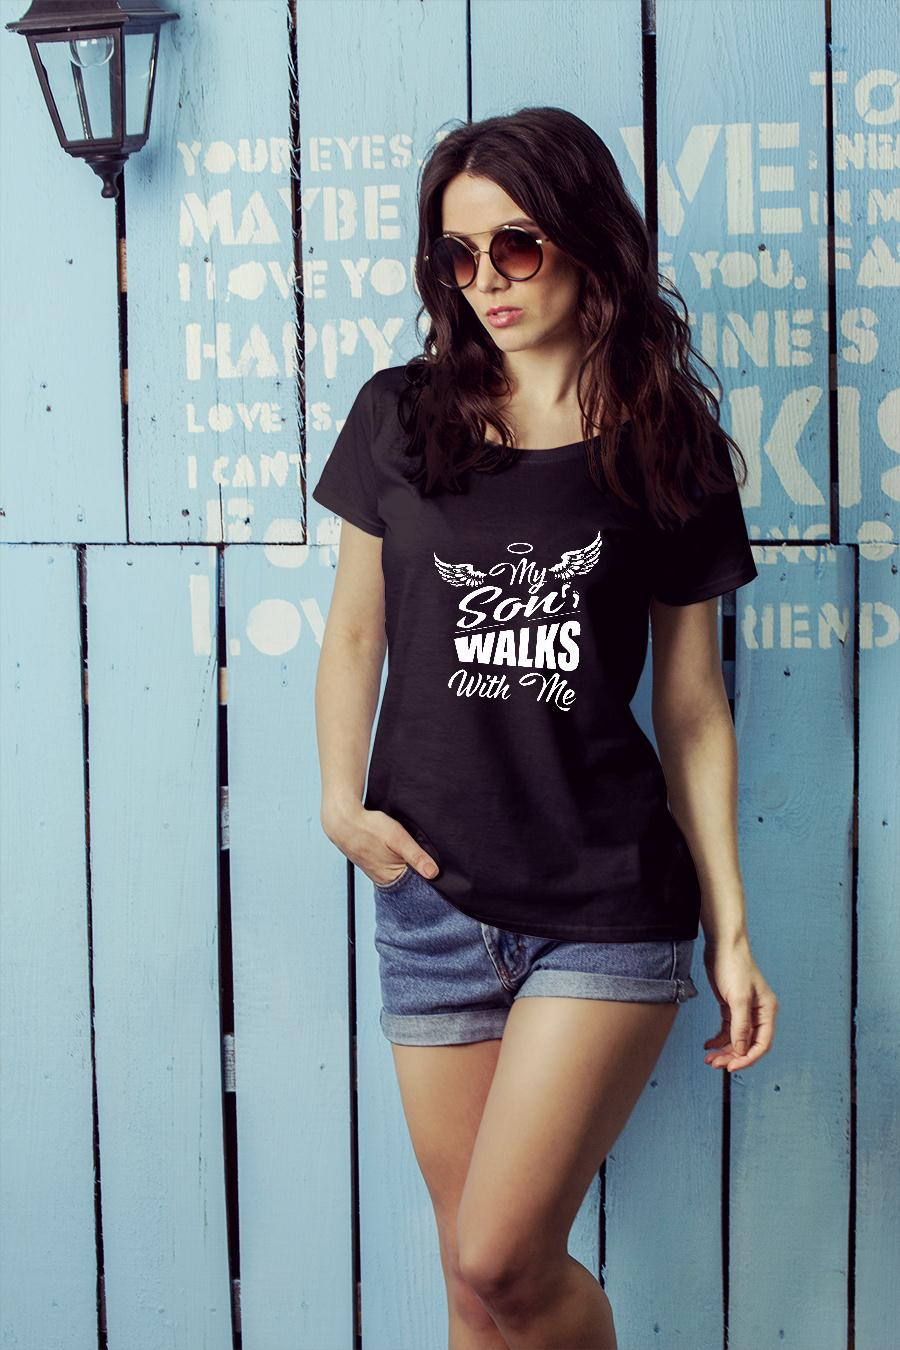 My son walks with me shirt ladies tee official